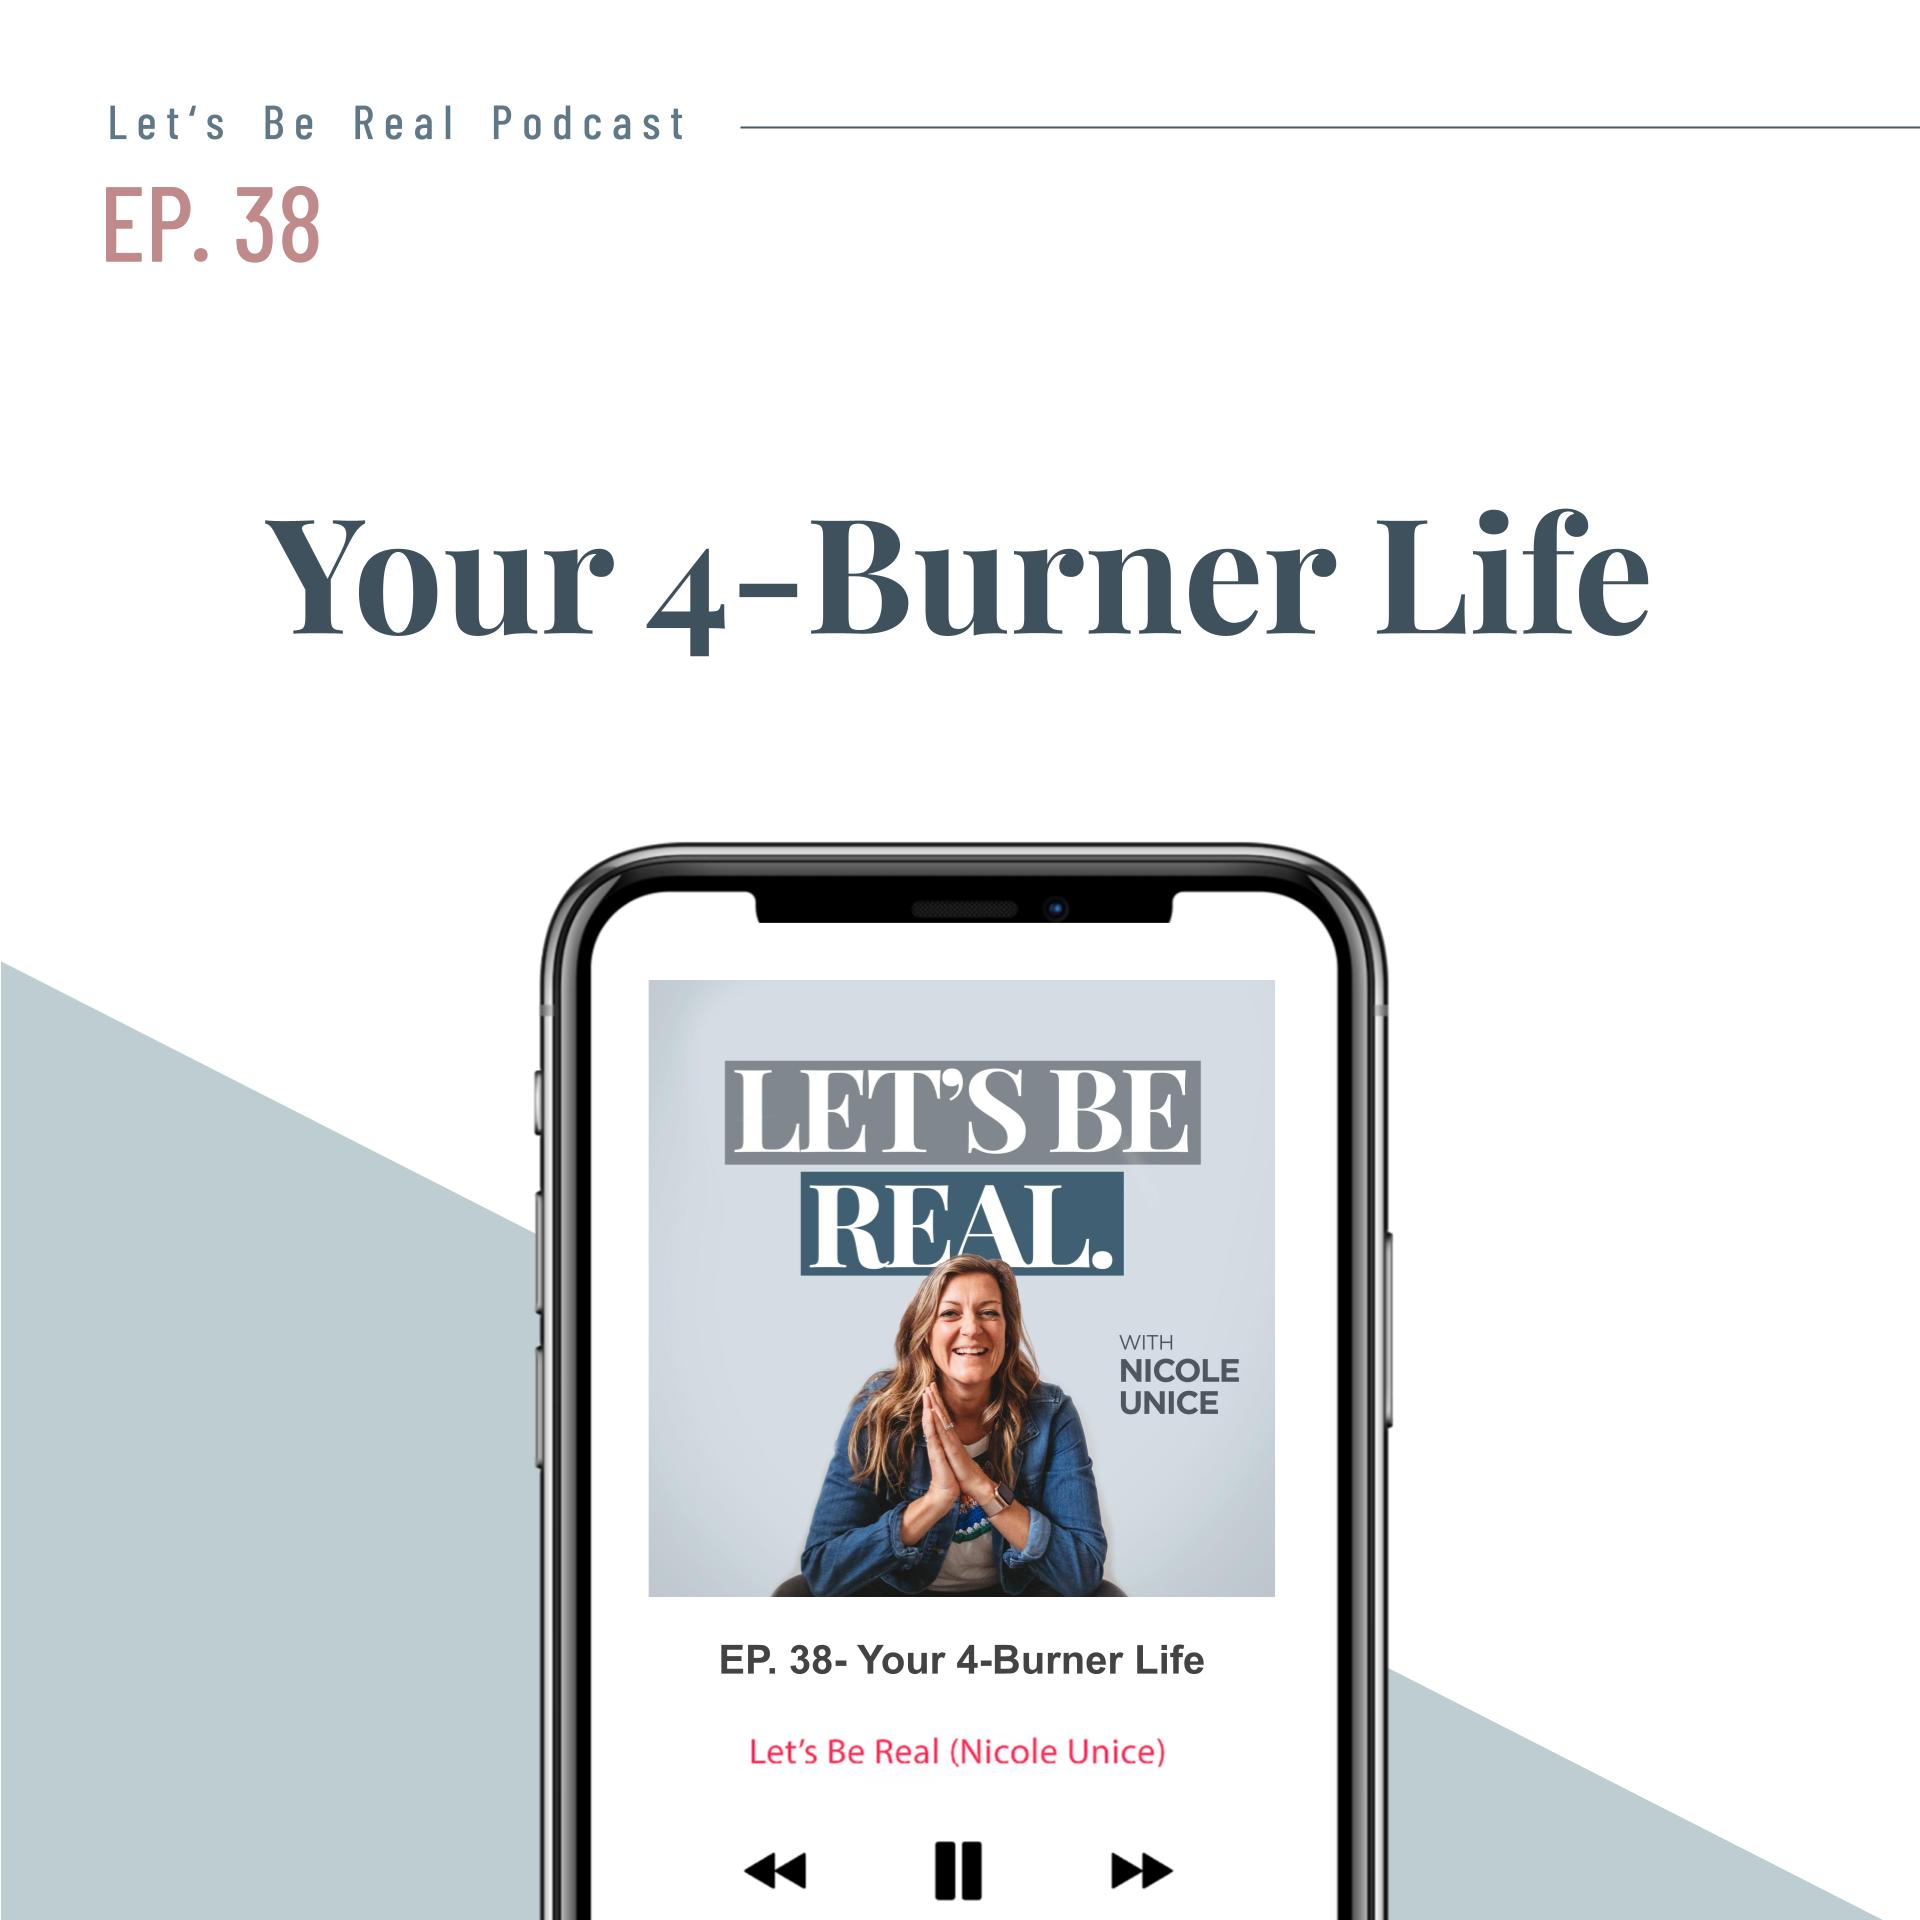 Your 4-Burner Life | Let's Be Real Podcast, Ep. 38